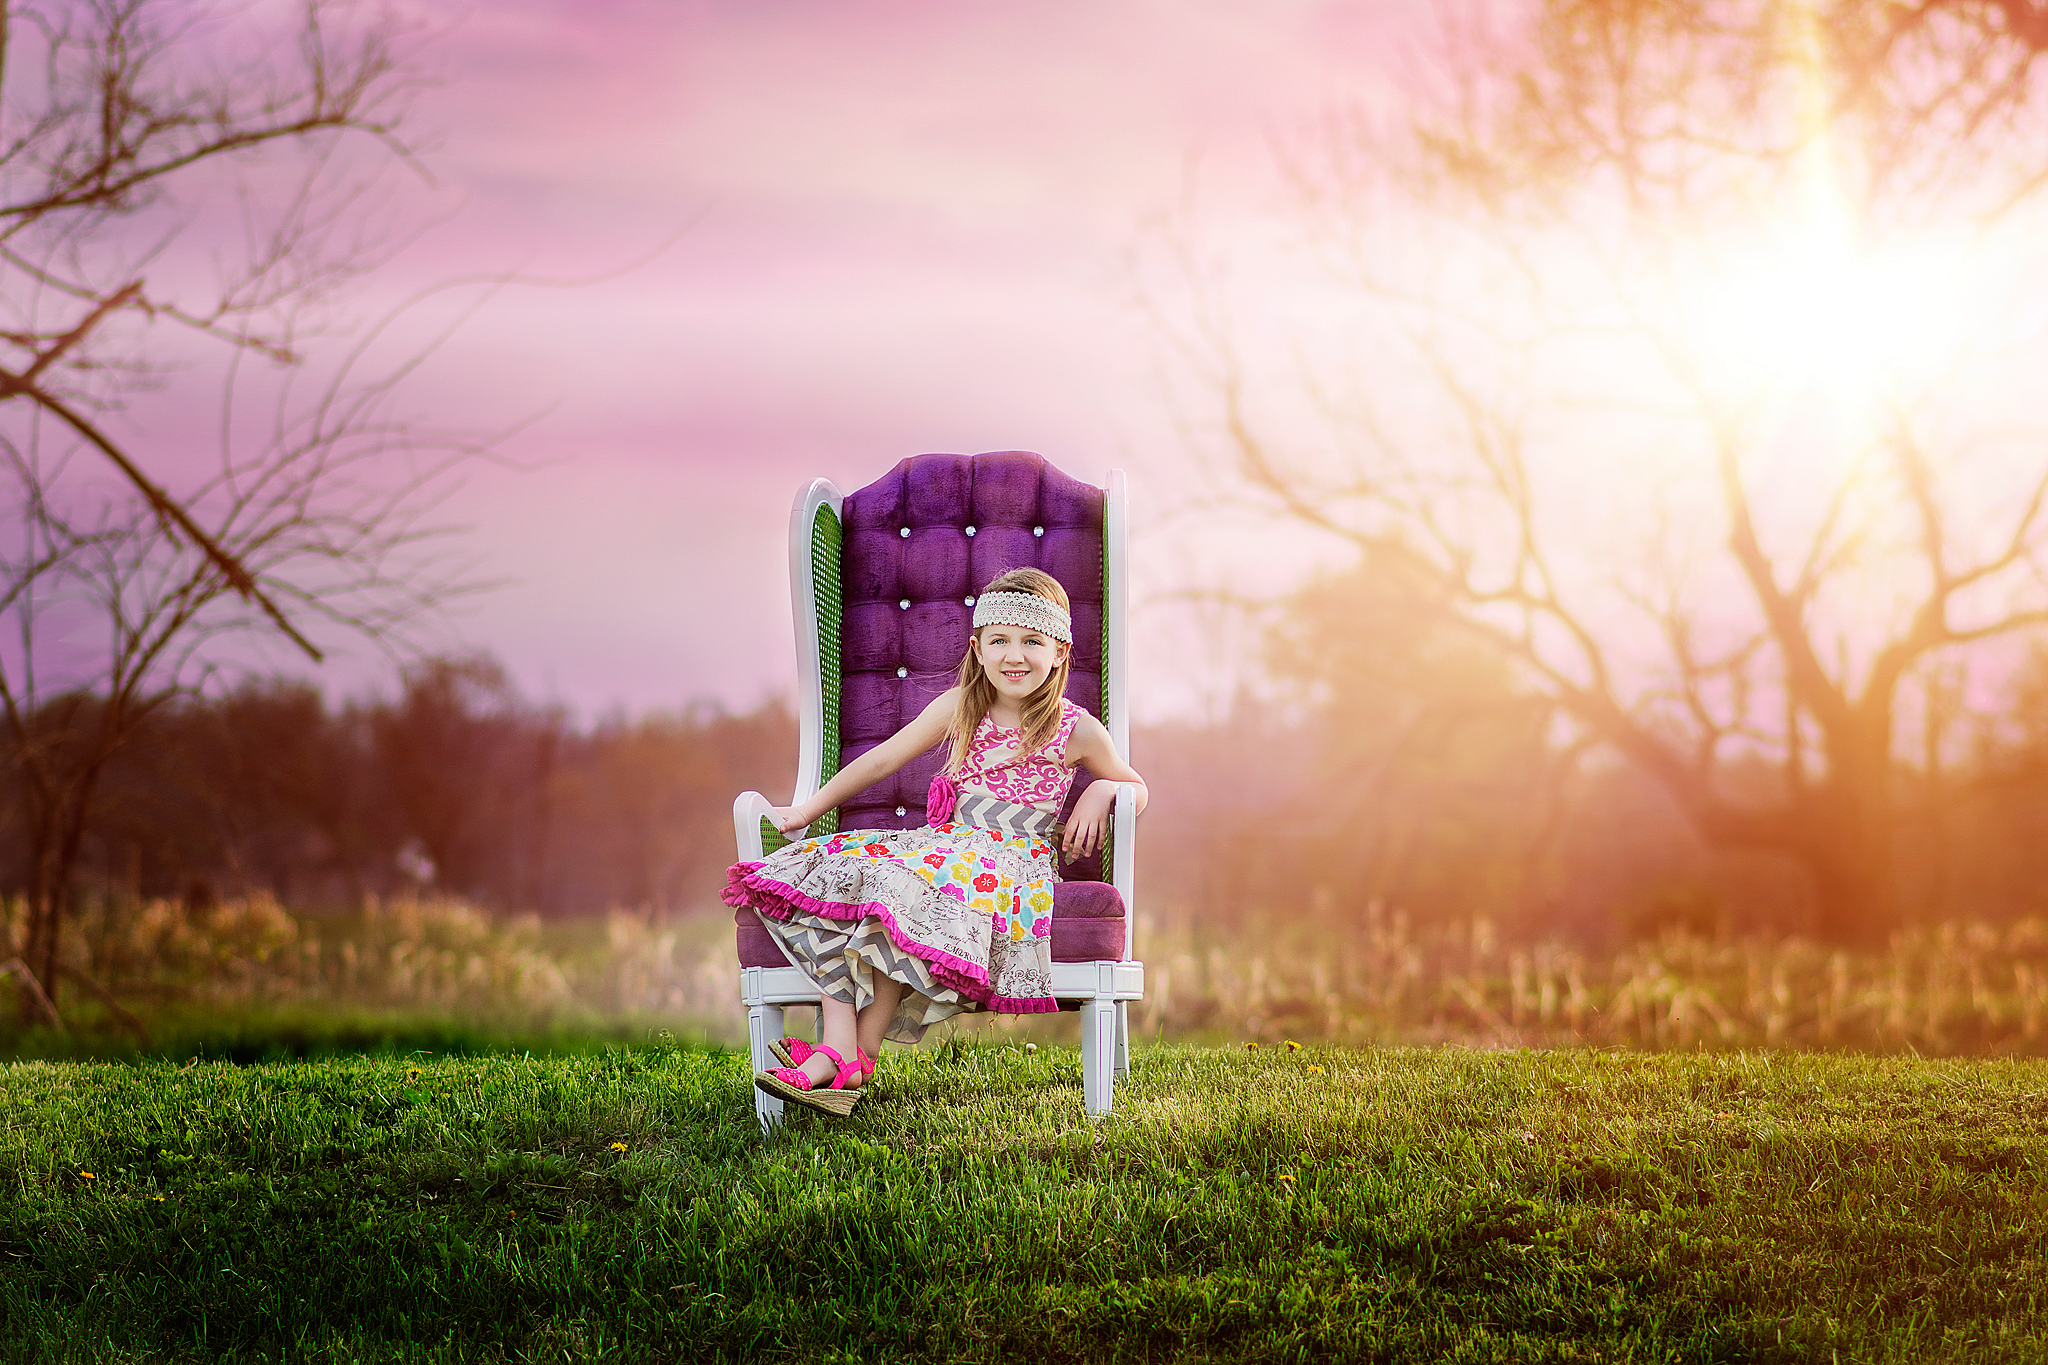 Young girl sitting in purple chair wearing mustard pie